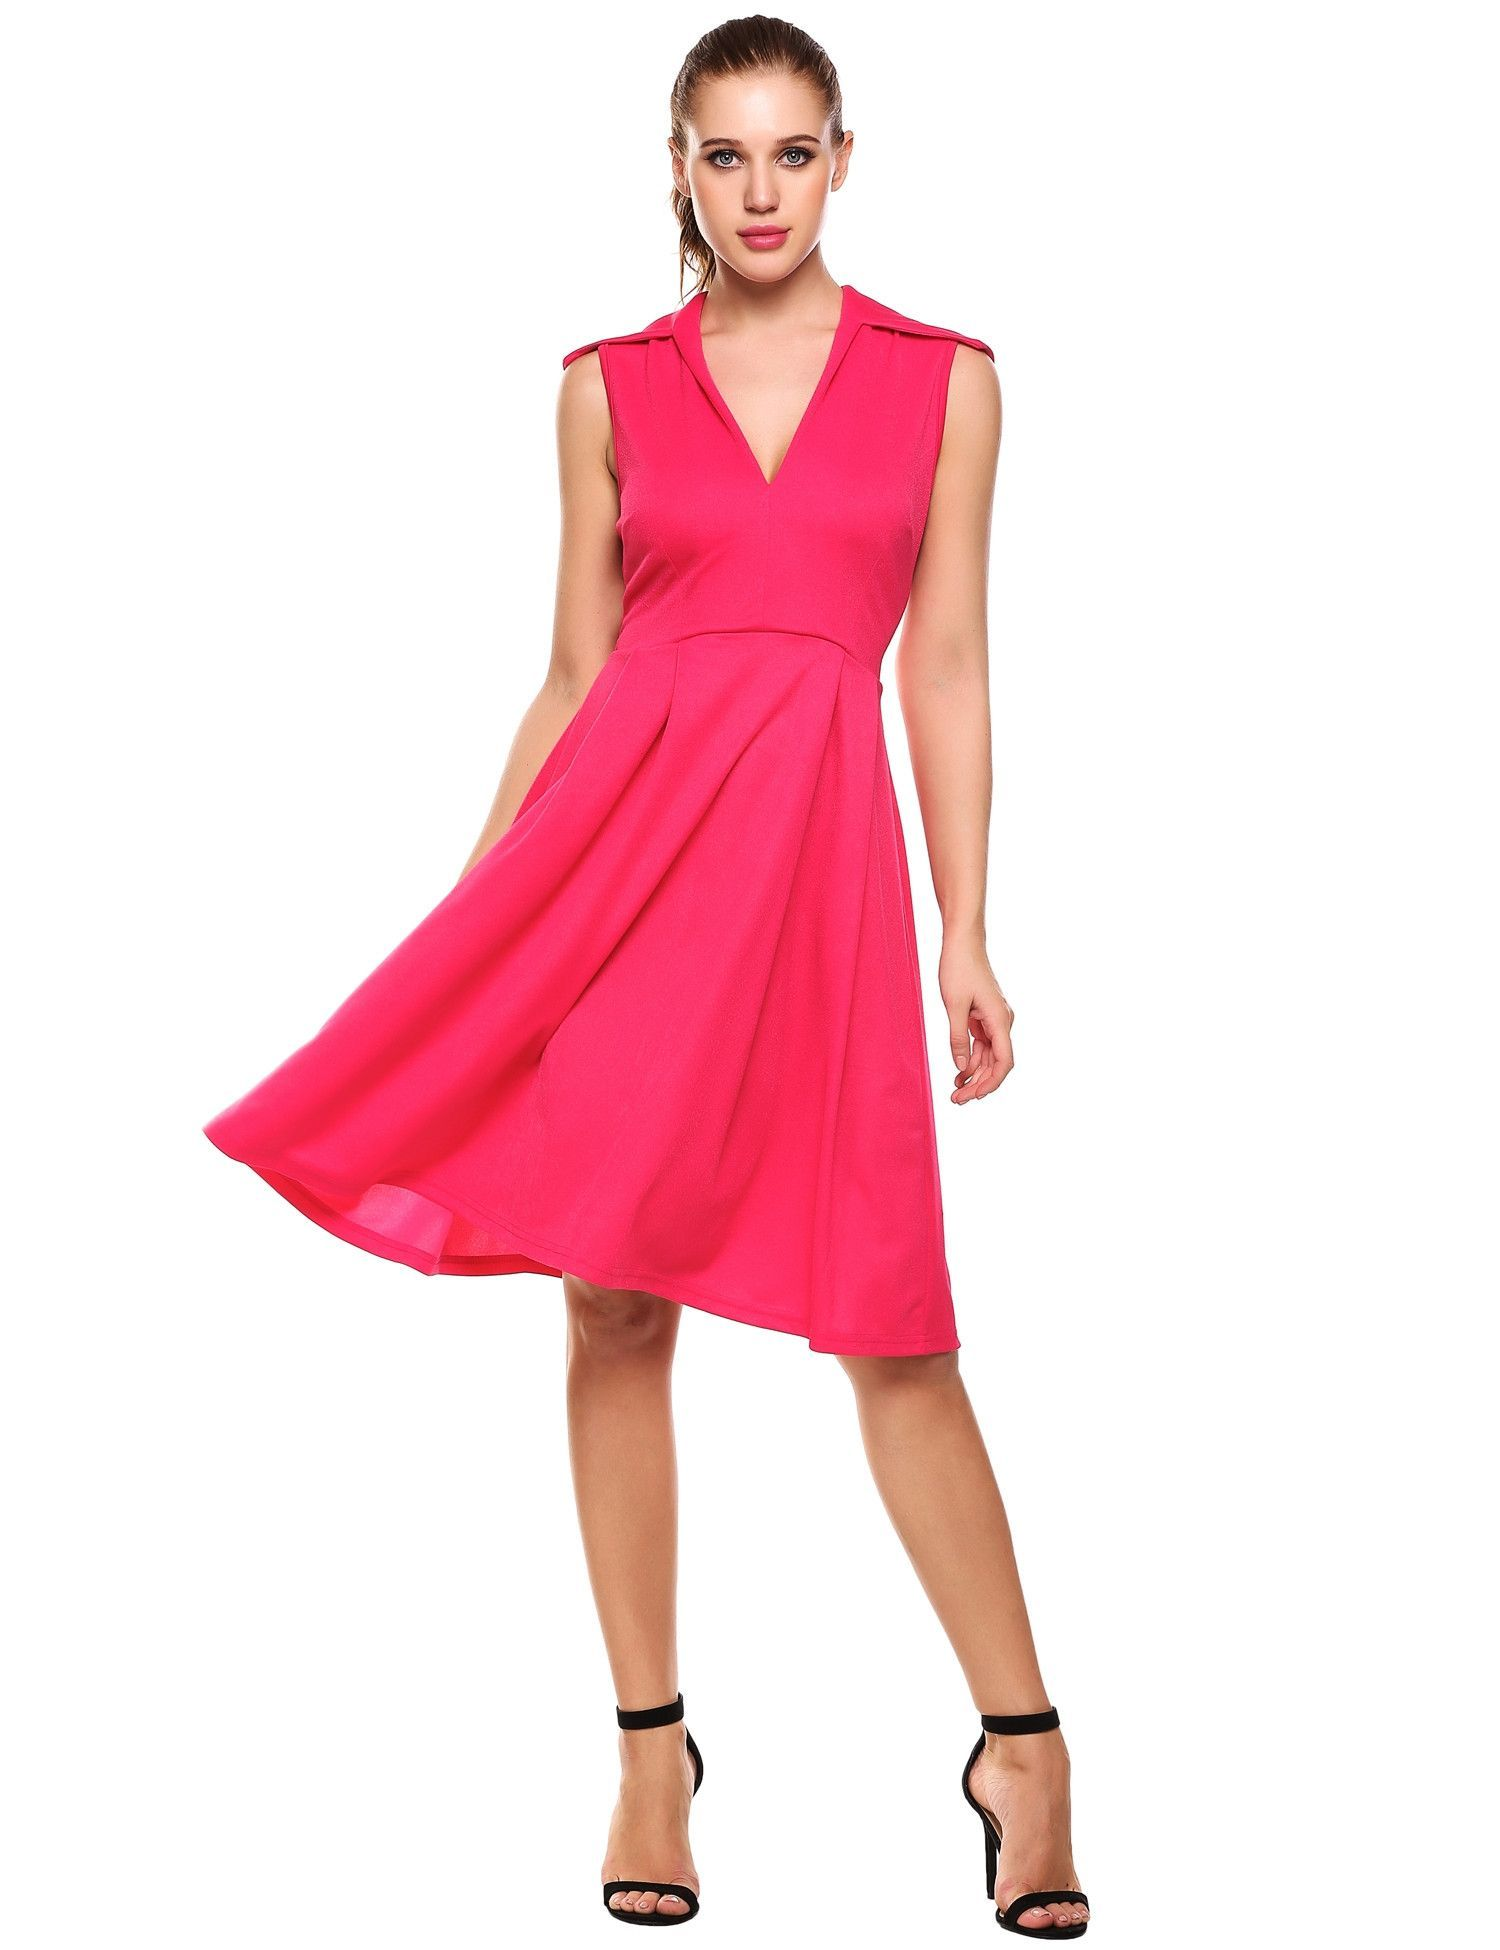 Rose red vintage style sleeveless swing party dress swings rose